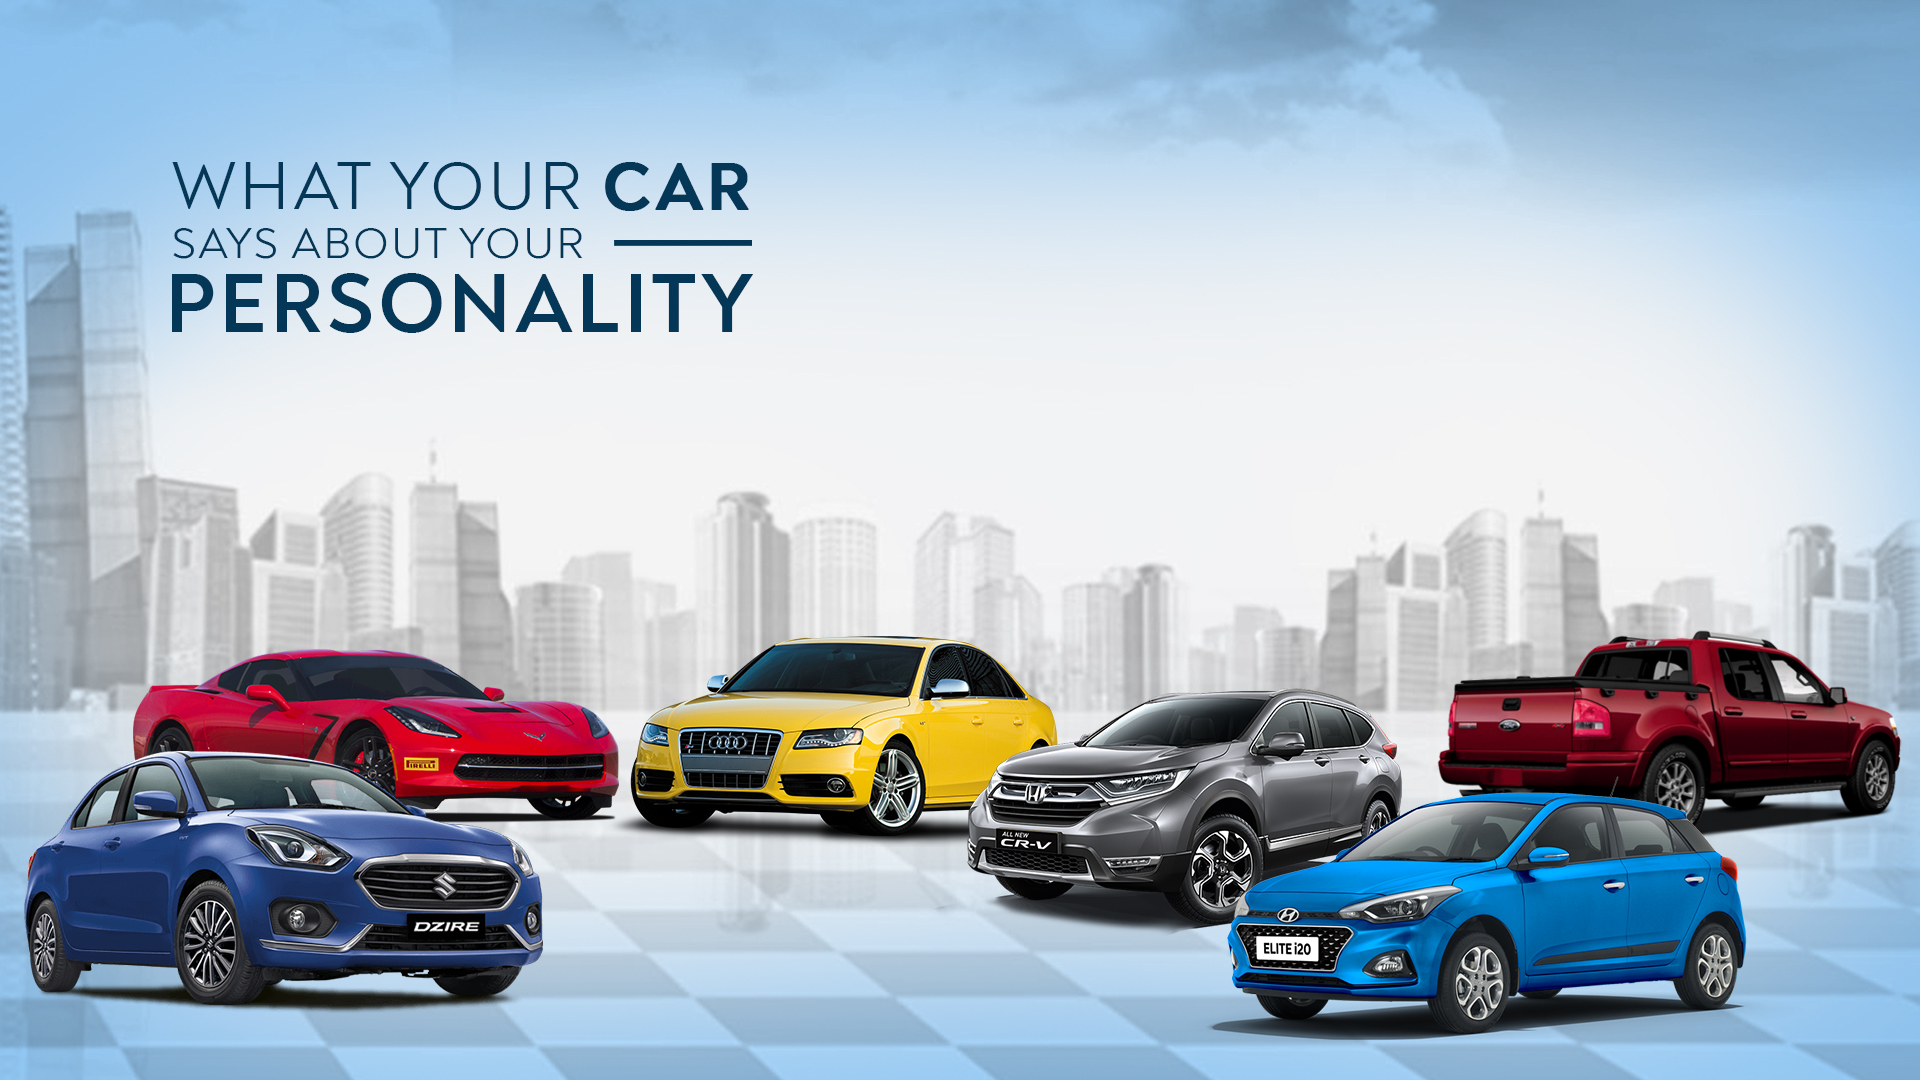 What Does Your Car Say About Your Personality?